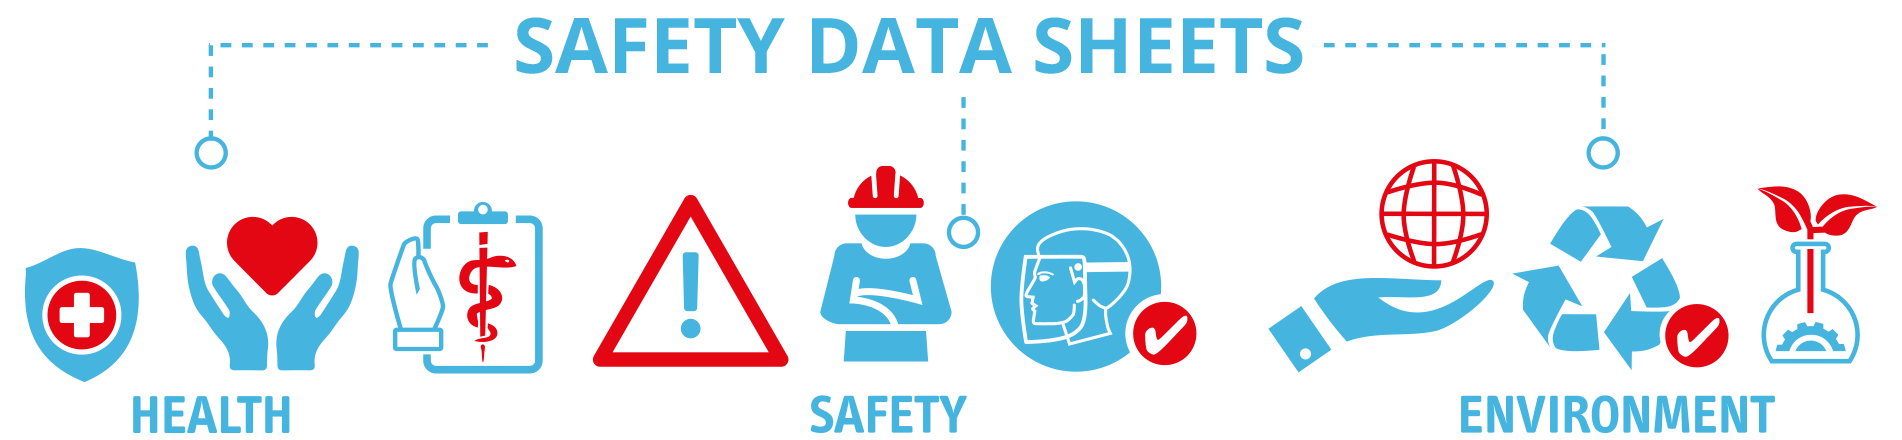 Safety Data Sheets Header